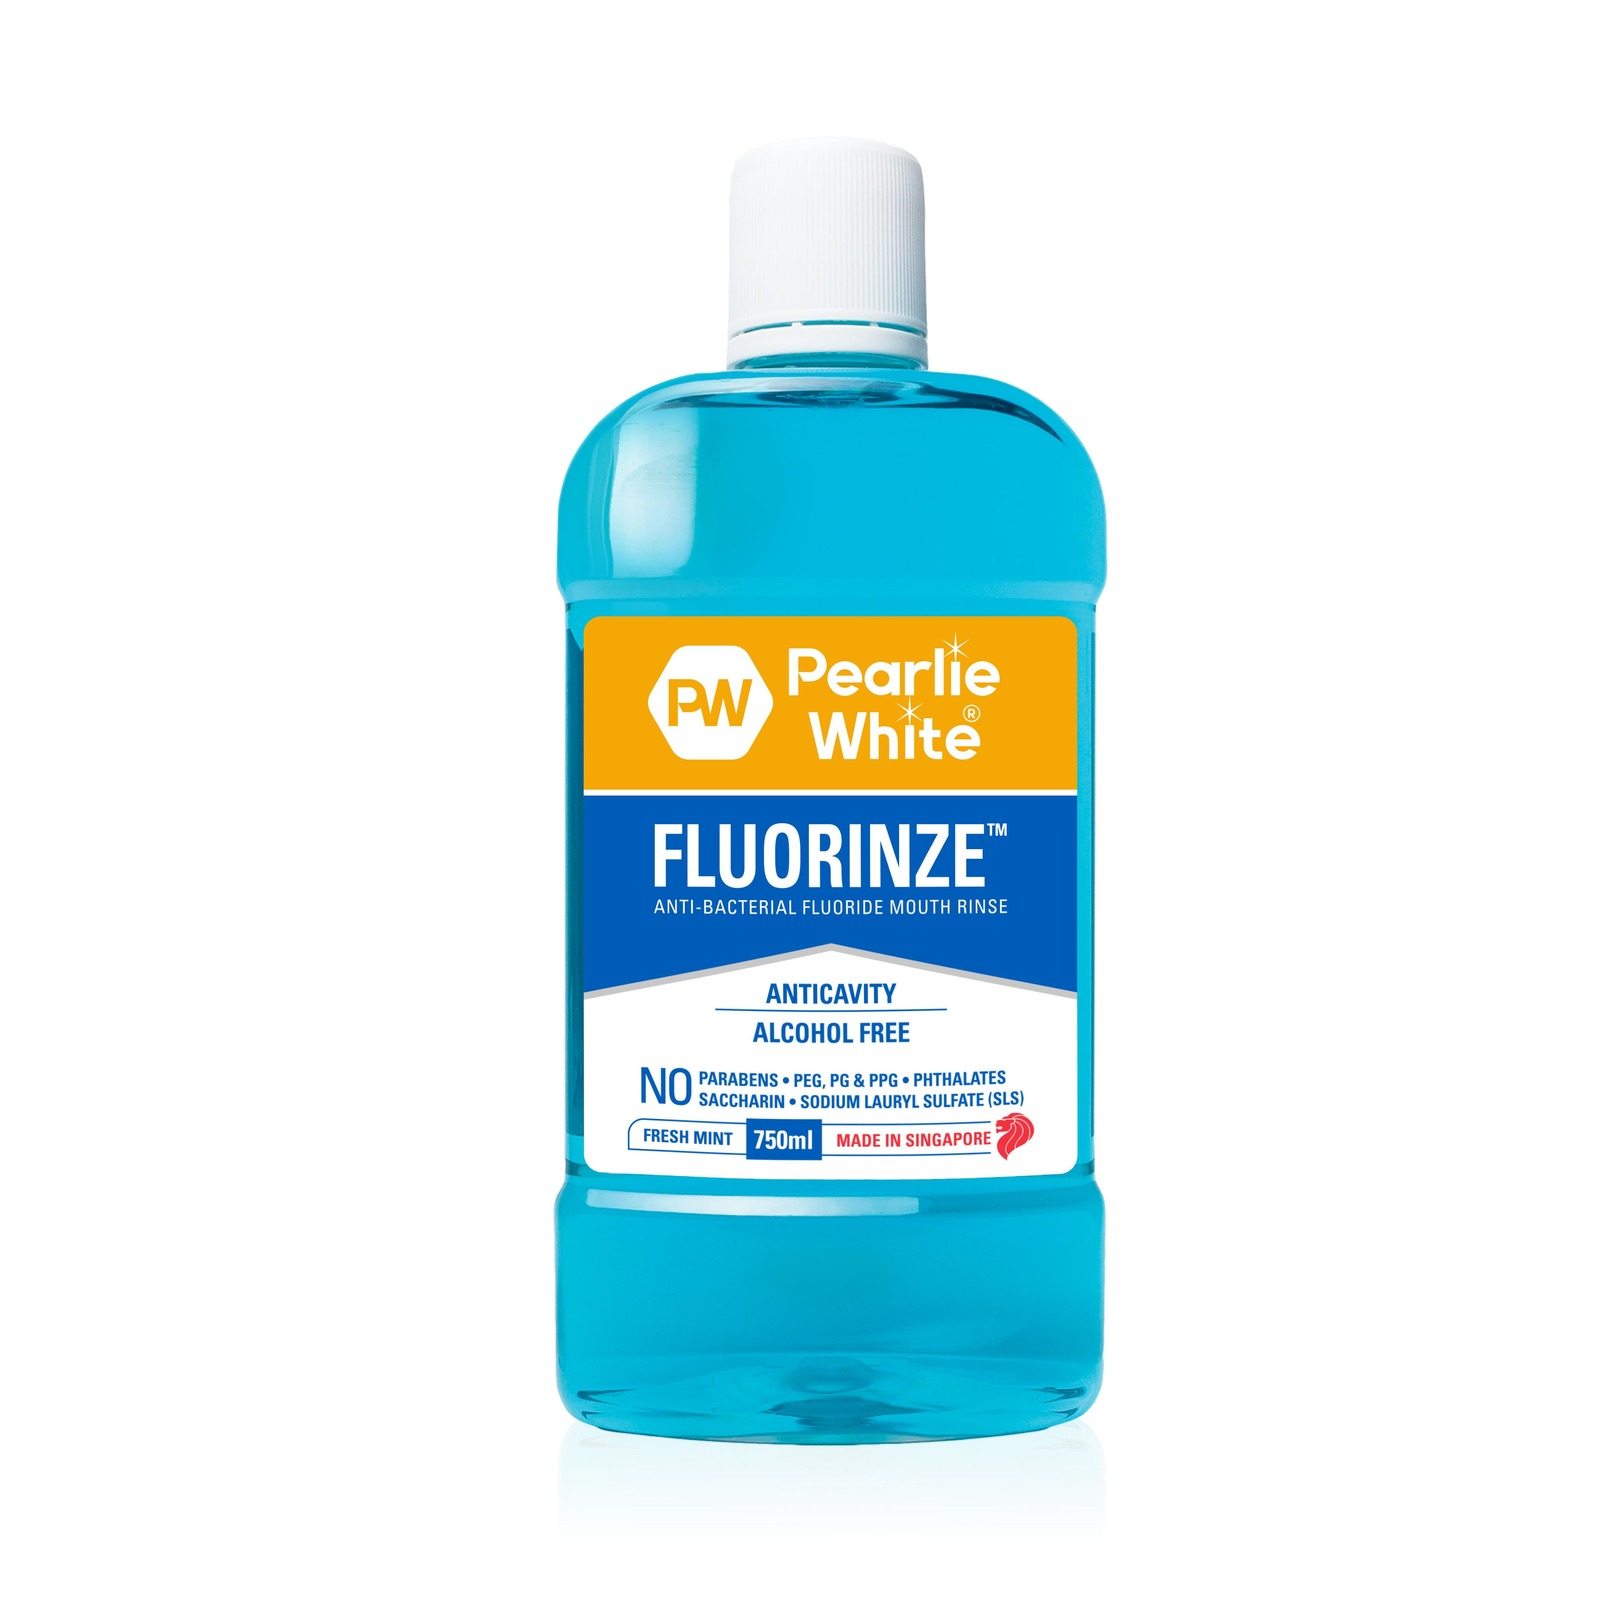 Pearlie White Fluorinze Alcohol Free Mouth Rinse